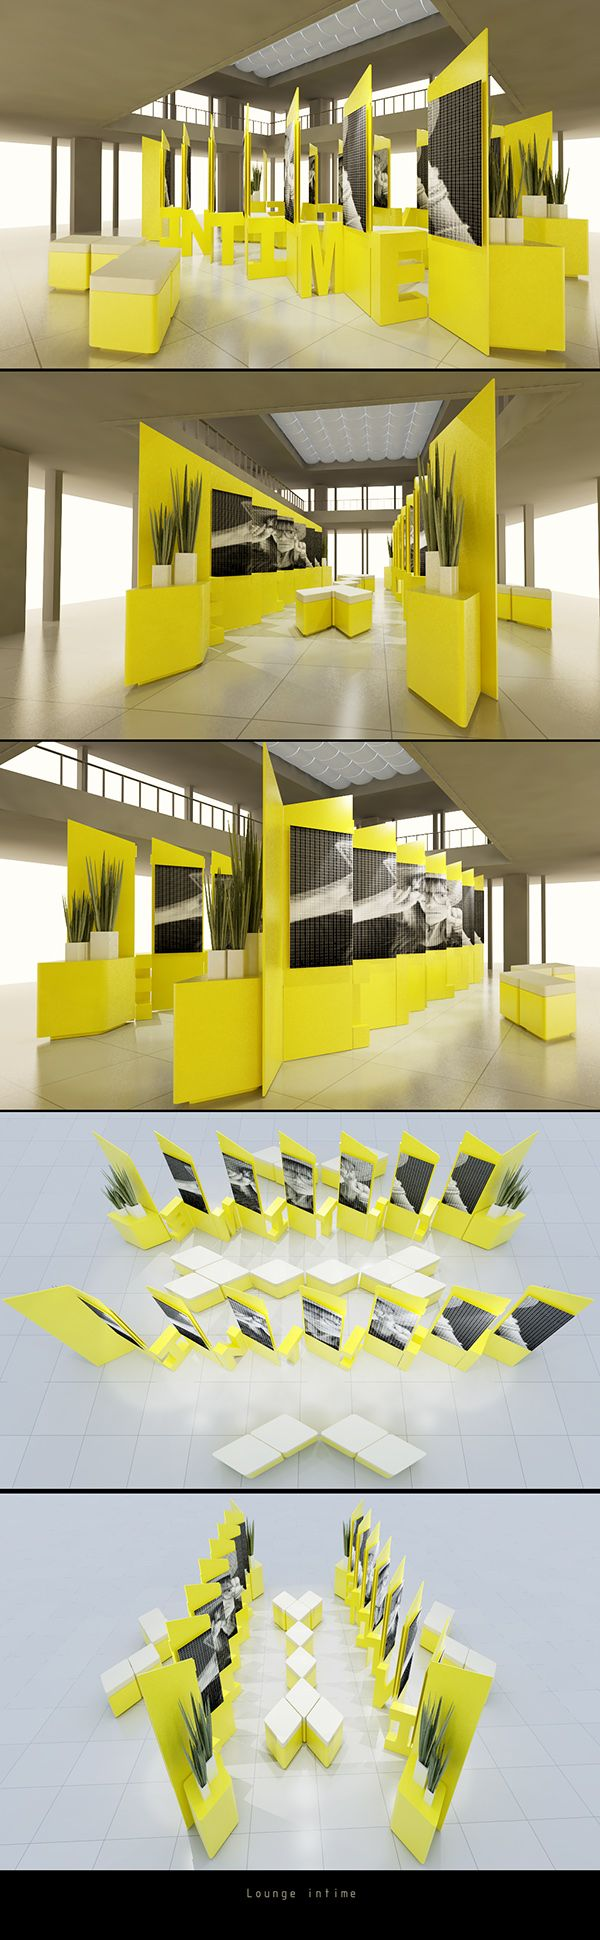 1. free-standing exhibit stands  2. Woo Eton | 邬 逸冬 3. https://www.behance.net/gallery/INTIME/12425587 4. the color of the exhibit is extremely interesting and would be eye catching across the room